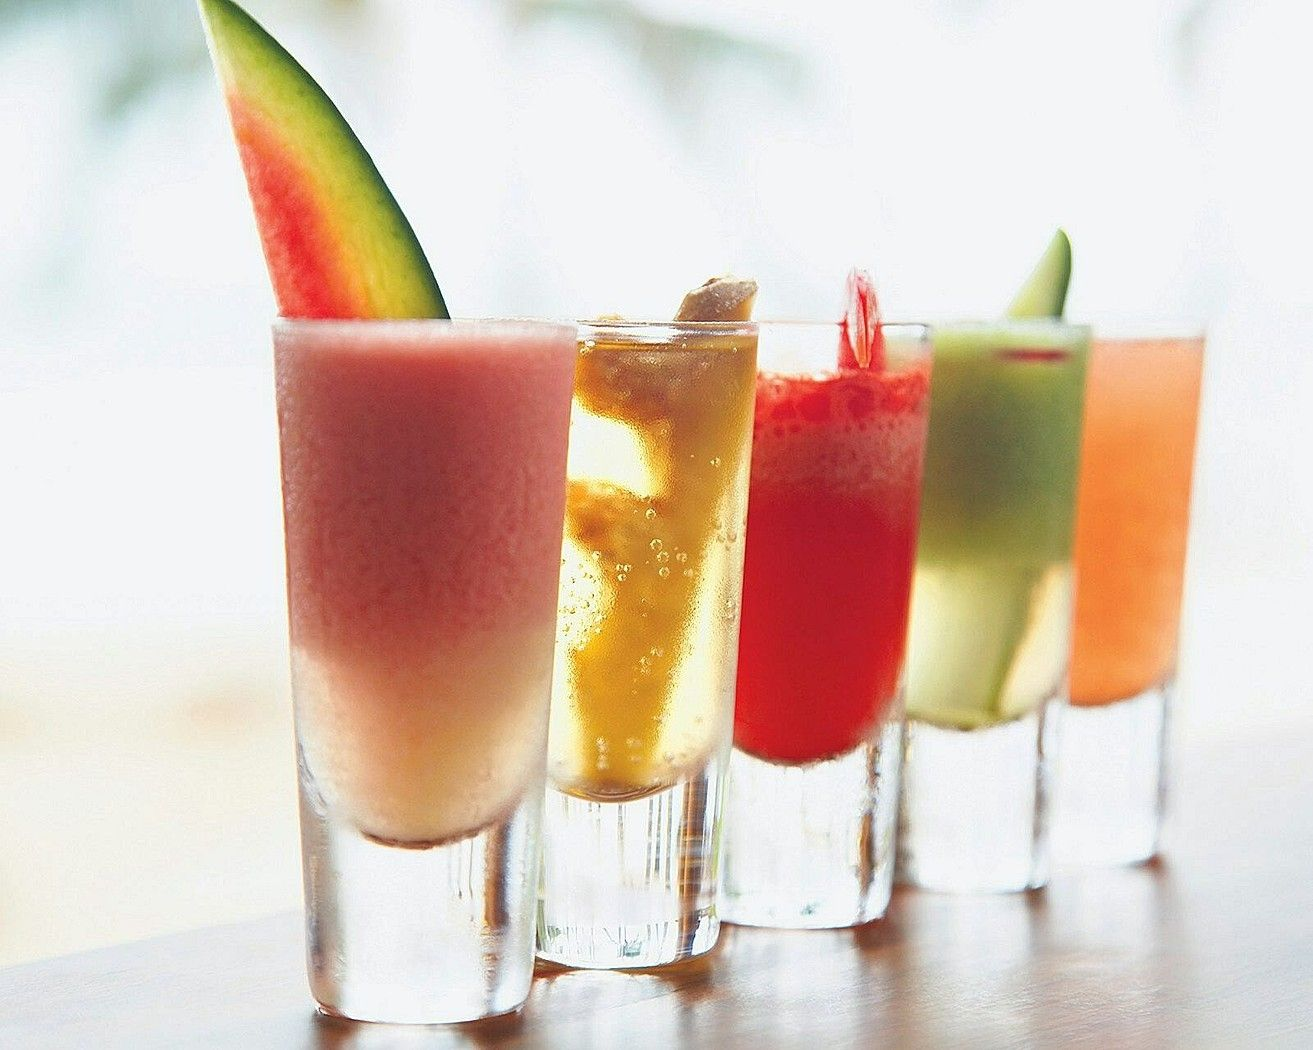 What could be the next beach refreshment on the next hour at the Main Beach of Four Seasons Resort Koh Samui, Thailand? Hmmm...